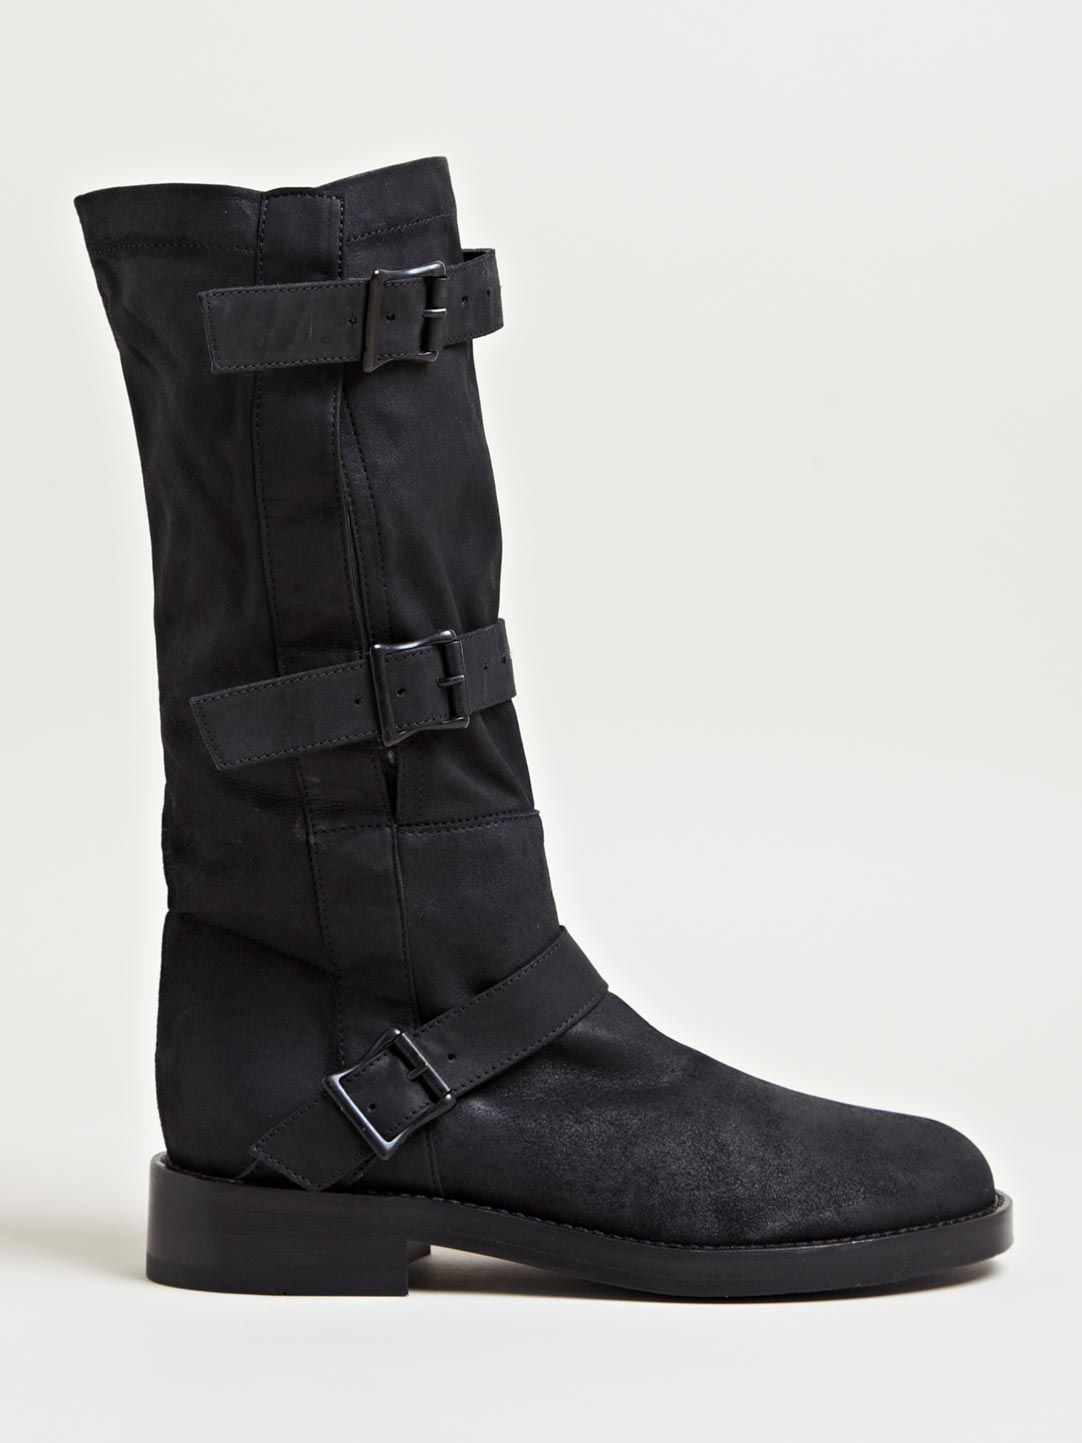 Women's Angelina Boots by Ann Demeulemeester